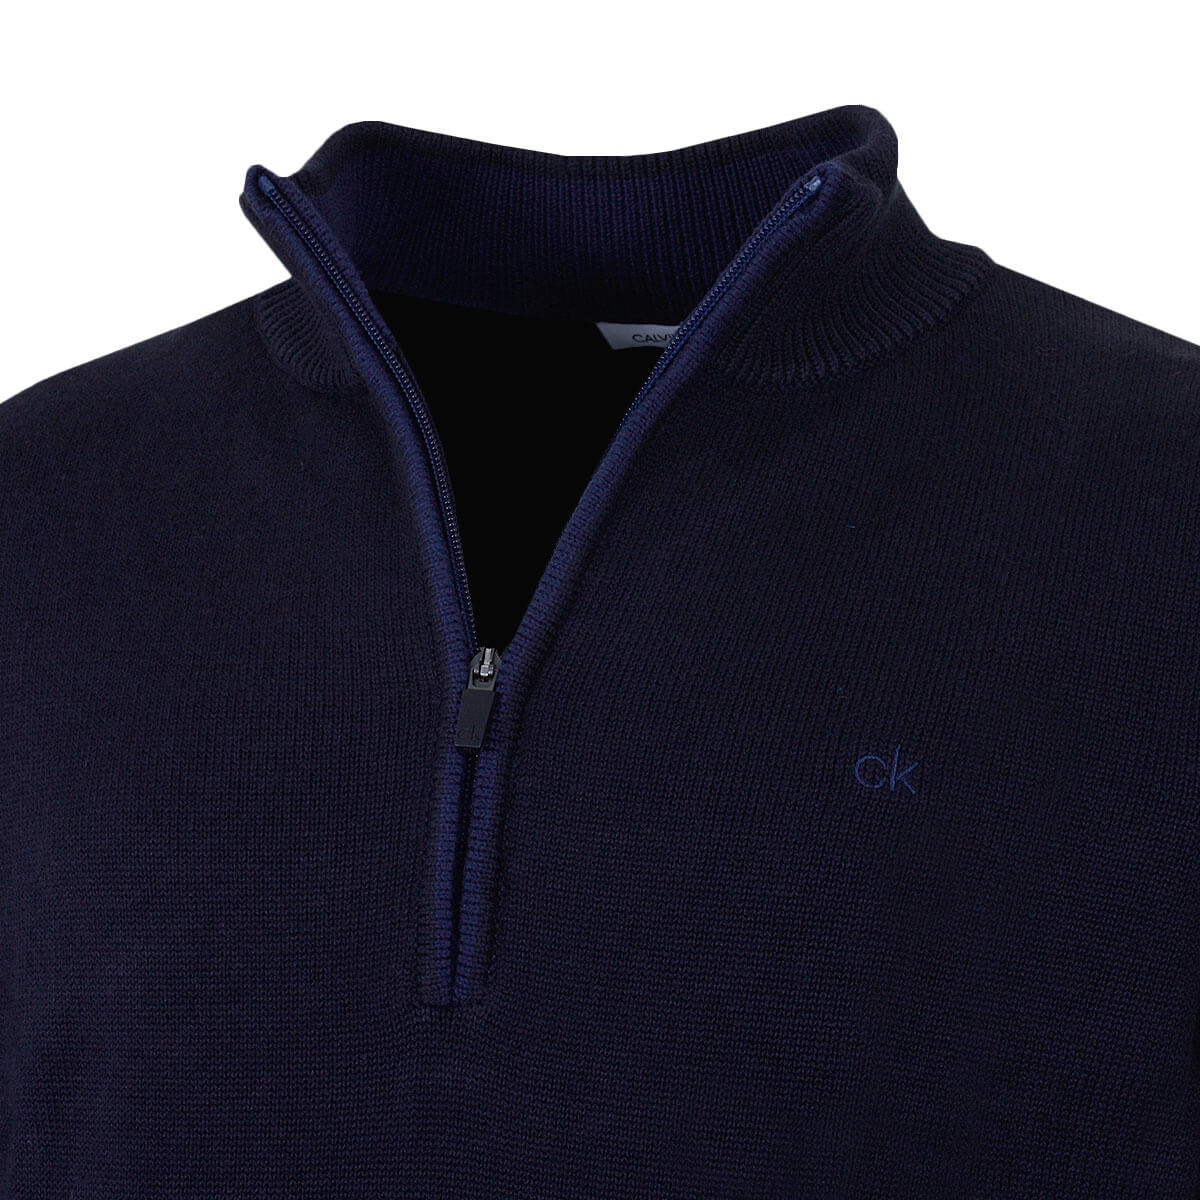 Calvin-Klein-Golf-Mens-2019-Chunky-Cotton-1-2-Zip-Golf-Top-Sweater-37-OFF-RRP thumbnail 38